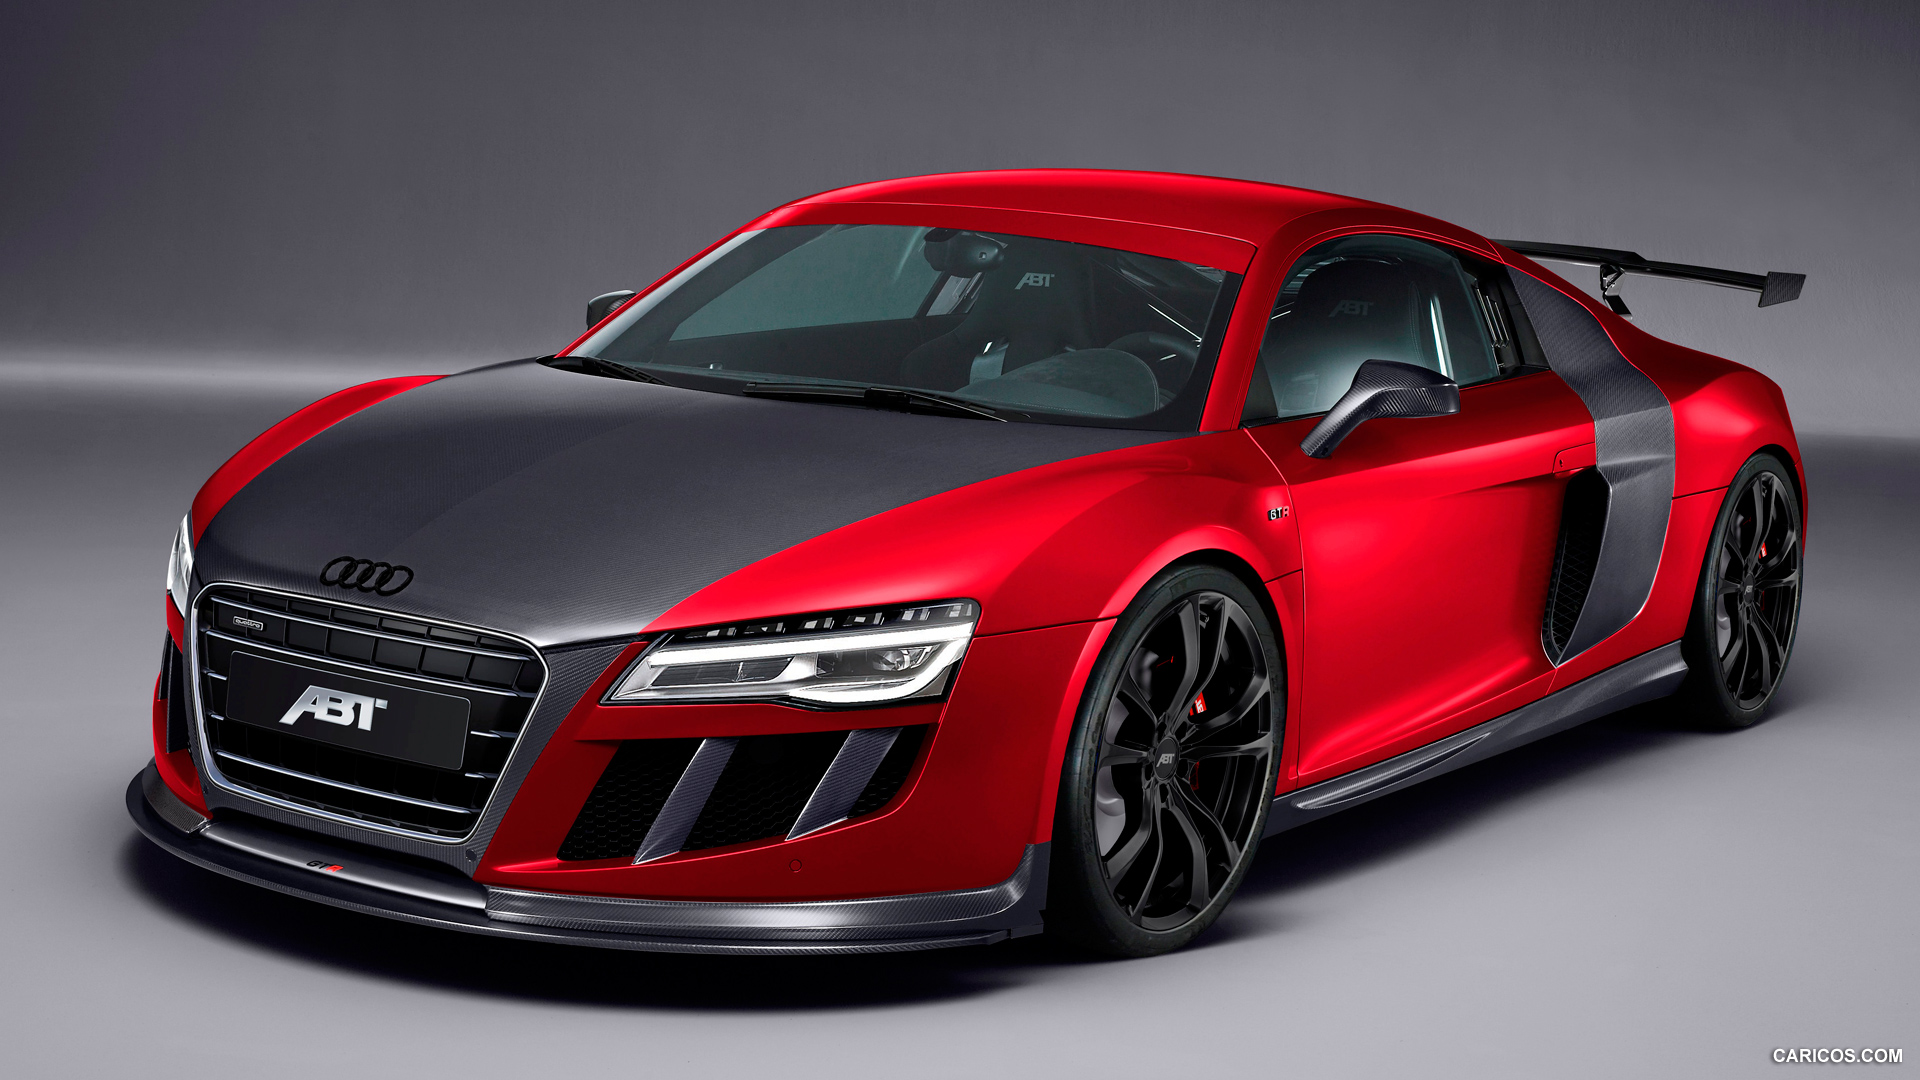 fine red audi r8 images & wallpapers haf marqyes